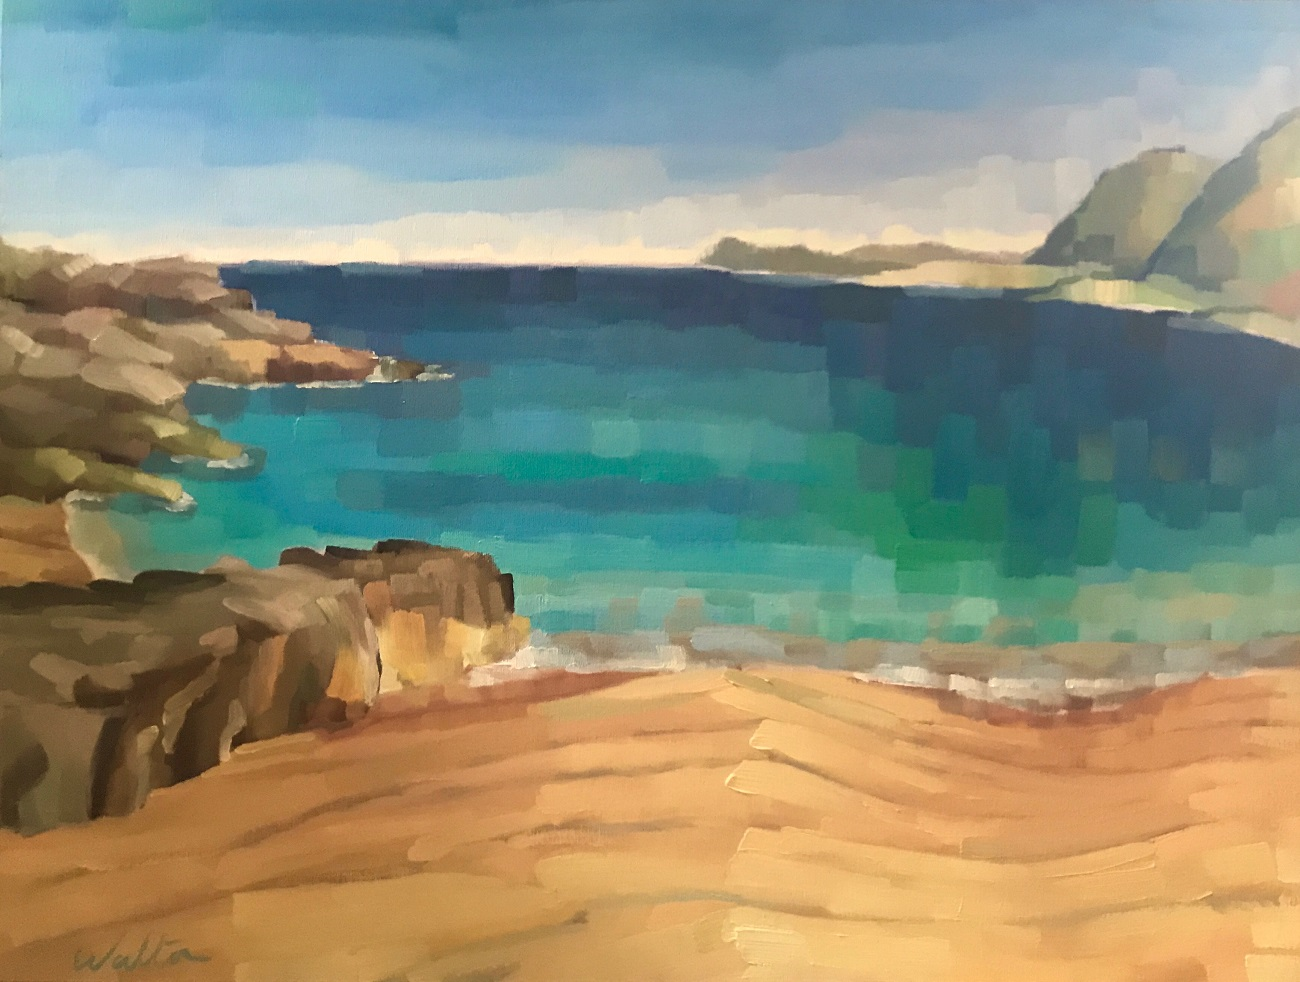 art exhibition, painting beach seascape, Monte Louro, Porto do son, Galicia, costa de morte